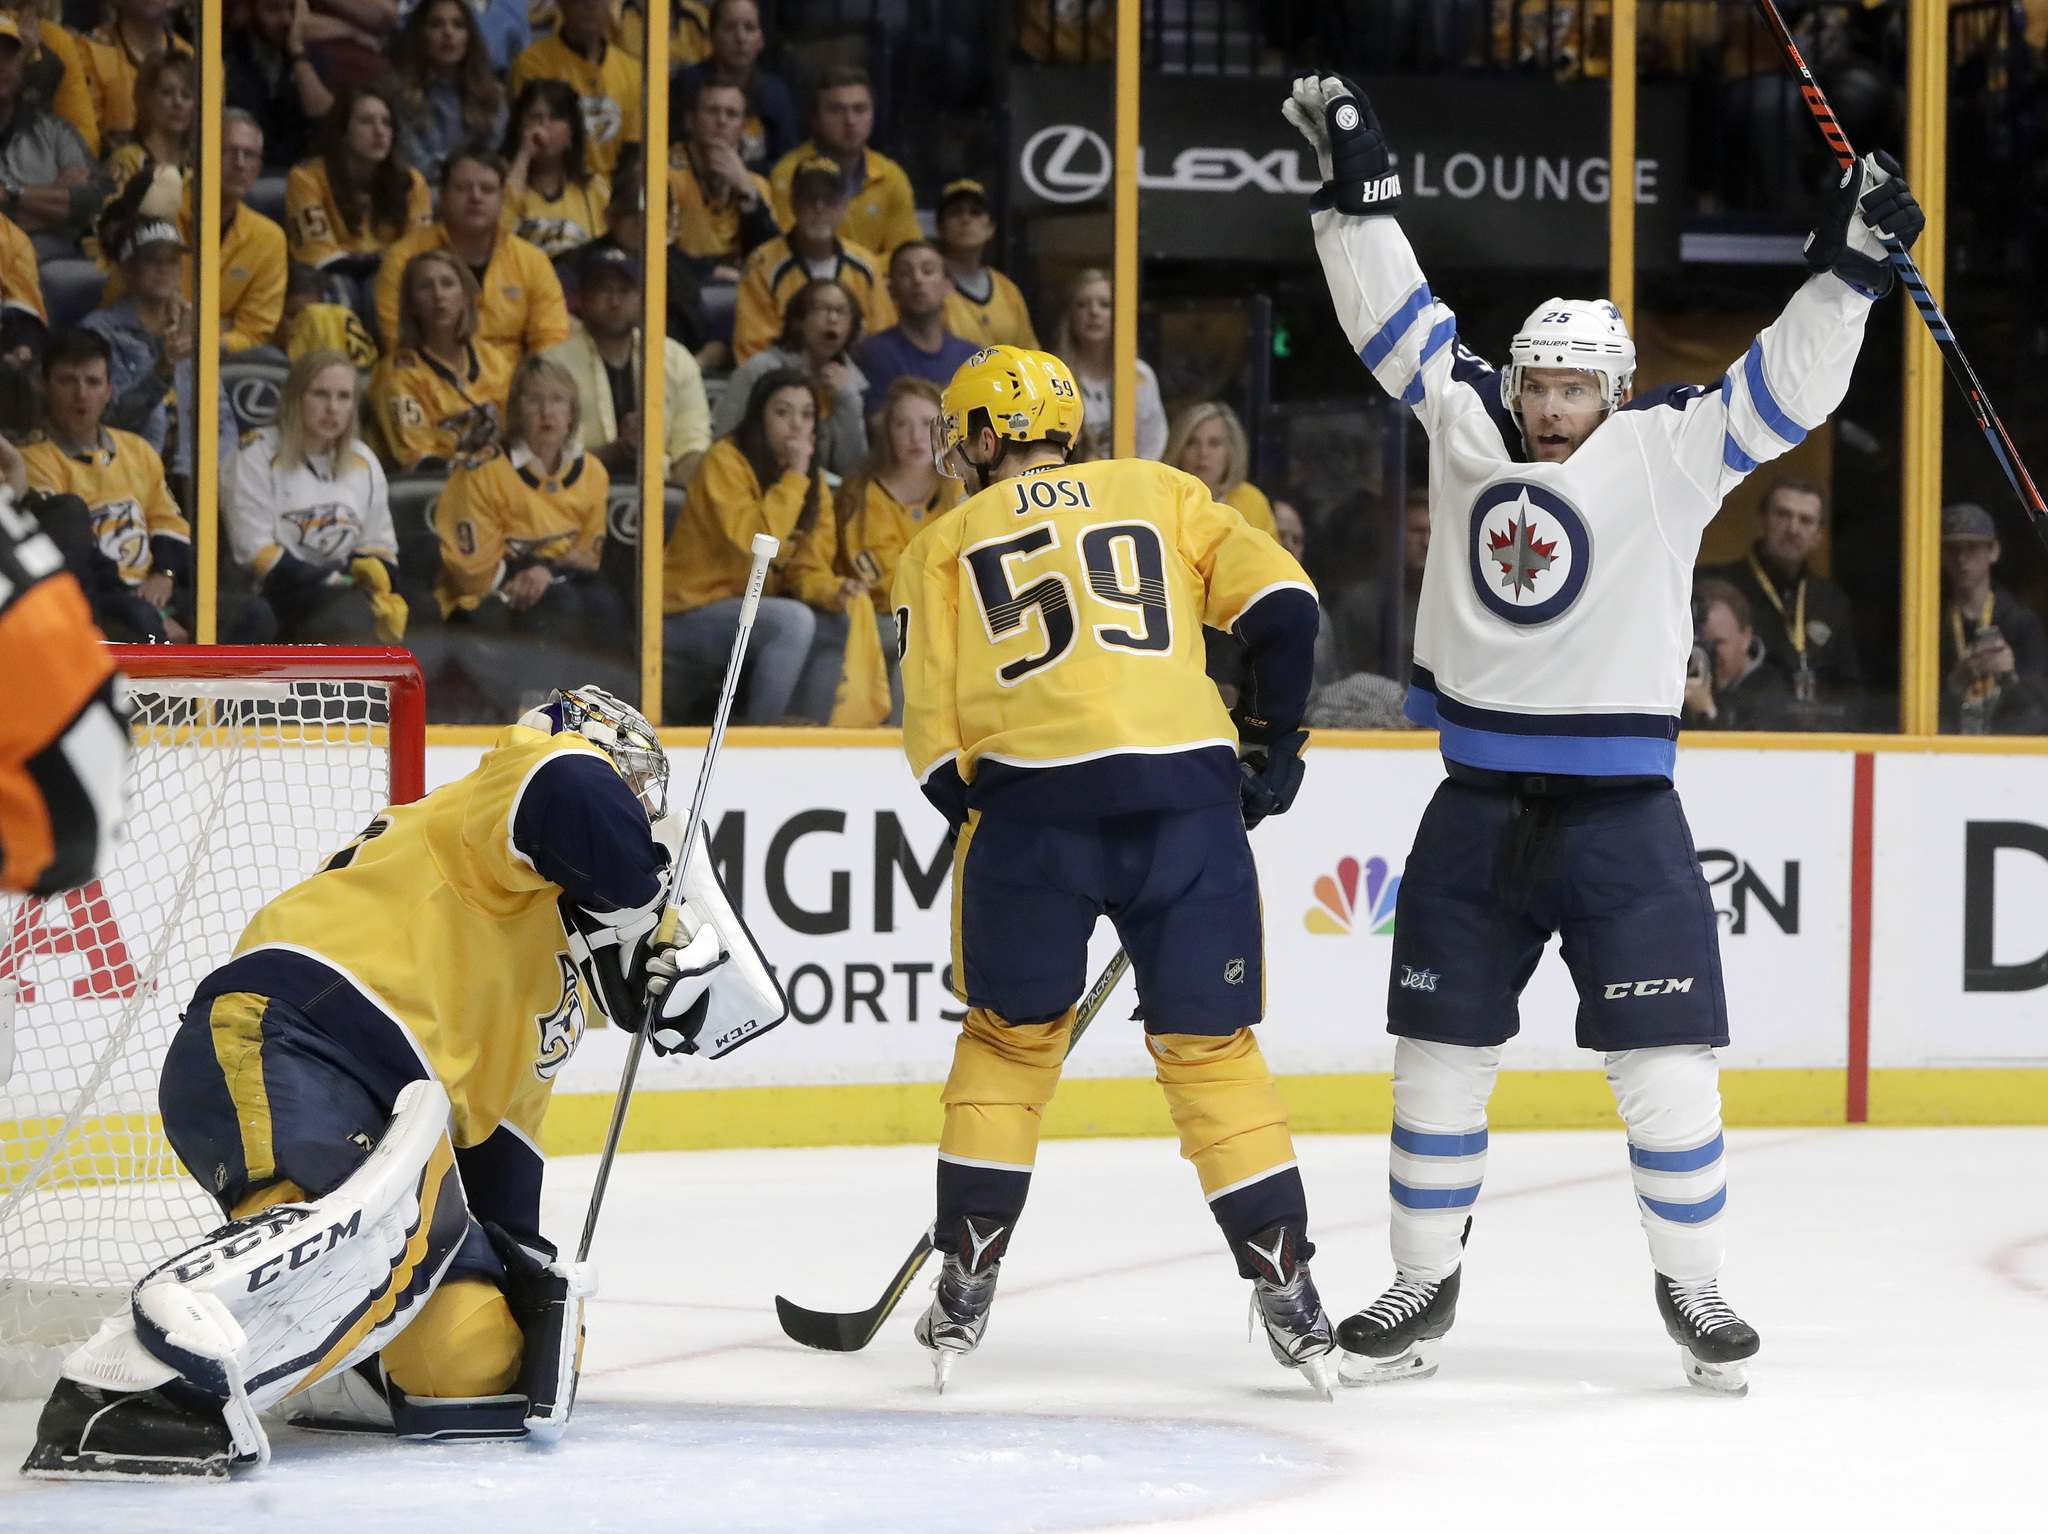 (AP Photo/Mark Humphrey)</p><p>Winnipeg Jets center Paul Stastny, right, celebrates after teammate Tyler Myers, not shown, scored a goal against Nashville Predators goalie Pekka Rinne, left, of Finland, during the first period in Game 7 of an NHL hockey second-round playoff series Thursday, May 10, 2018, in Nashville, Tenn. Also defending for the Predators is Roman Josi (59), of Switzerland. </p>